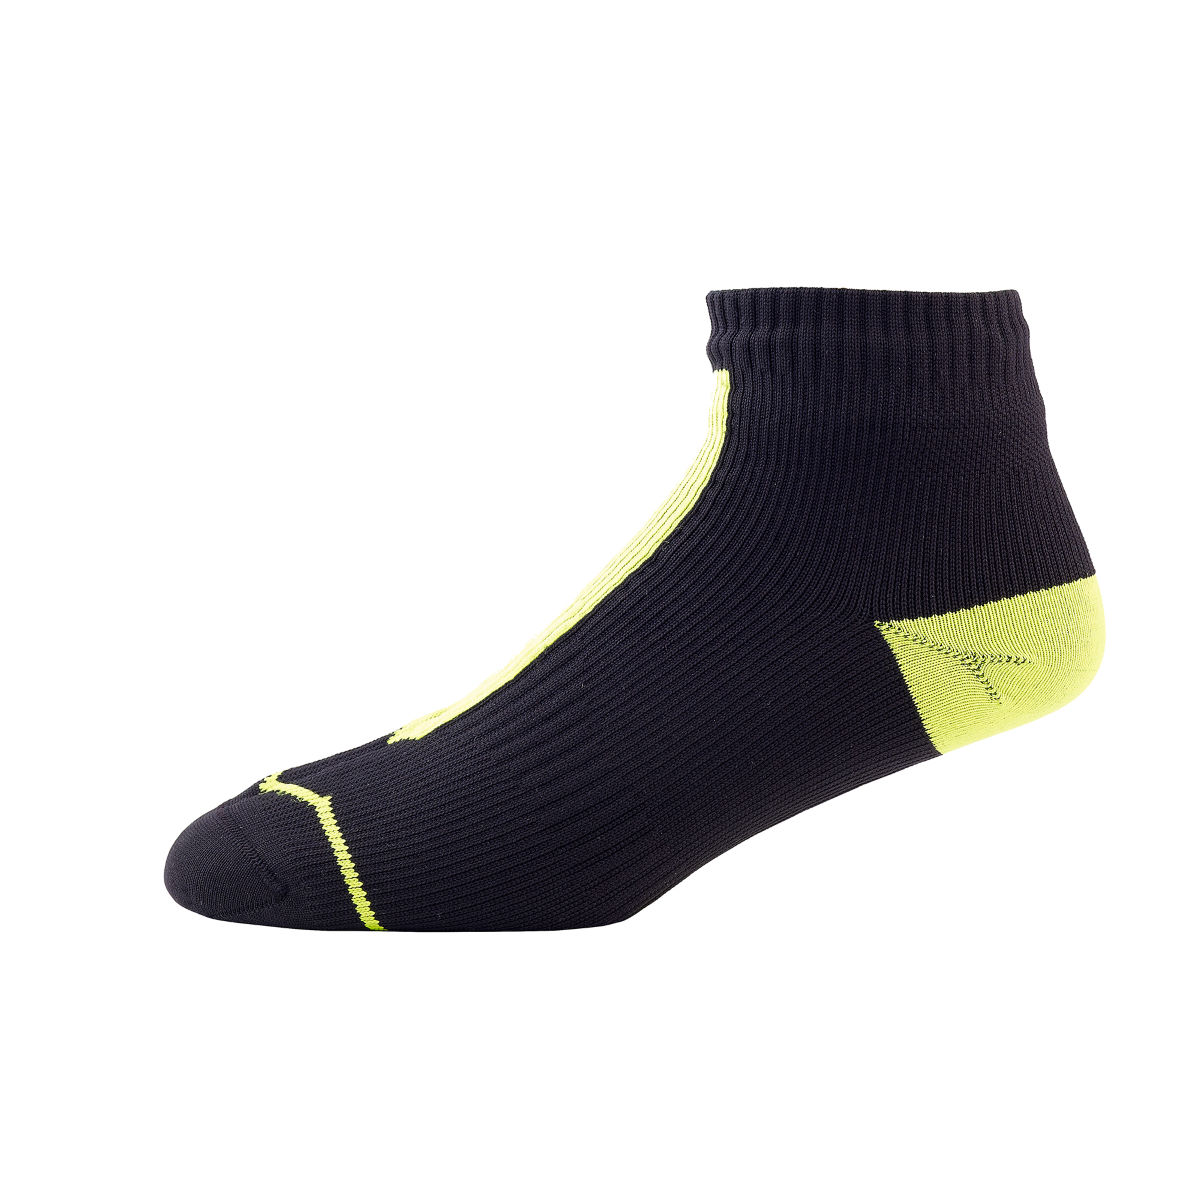 Chaussettes SealSkinz (route, basses) - M Black/Illuminous